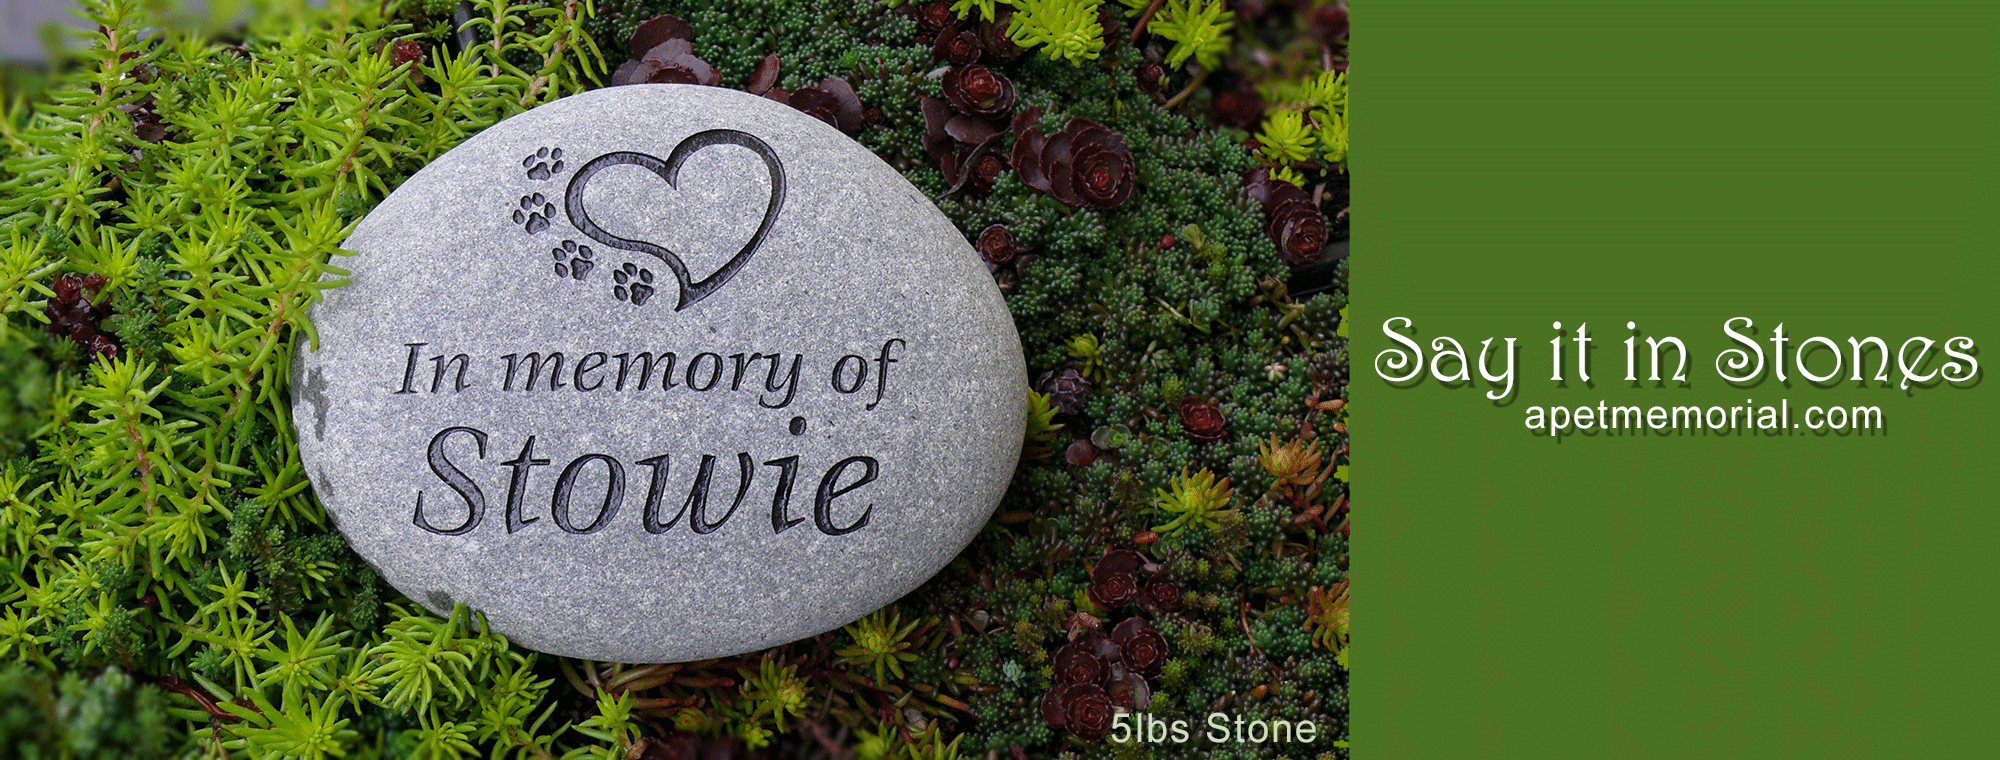 memorial designing pet pinterest stones ideas idea pin garden